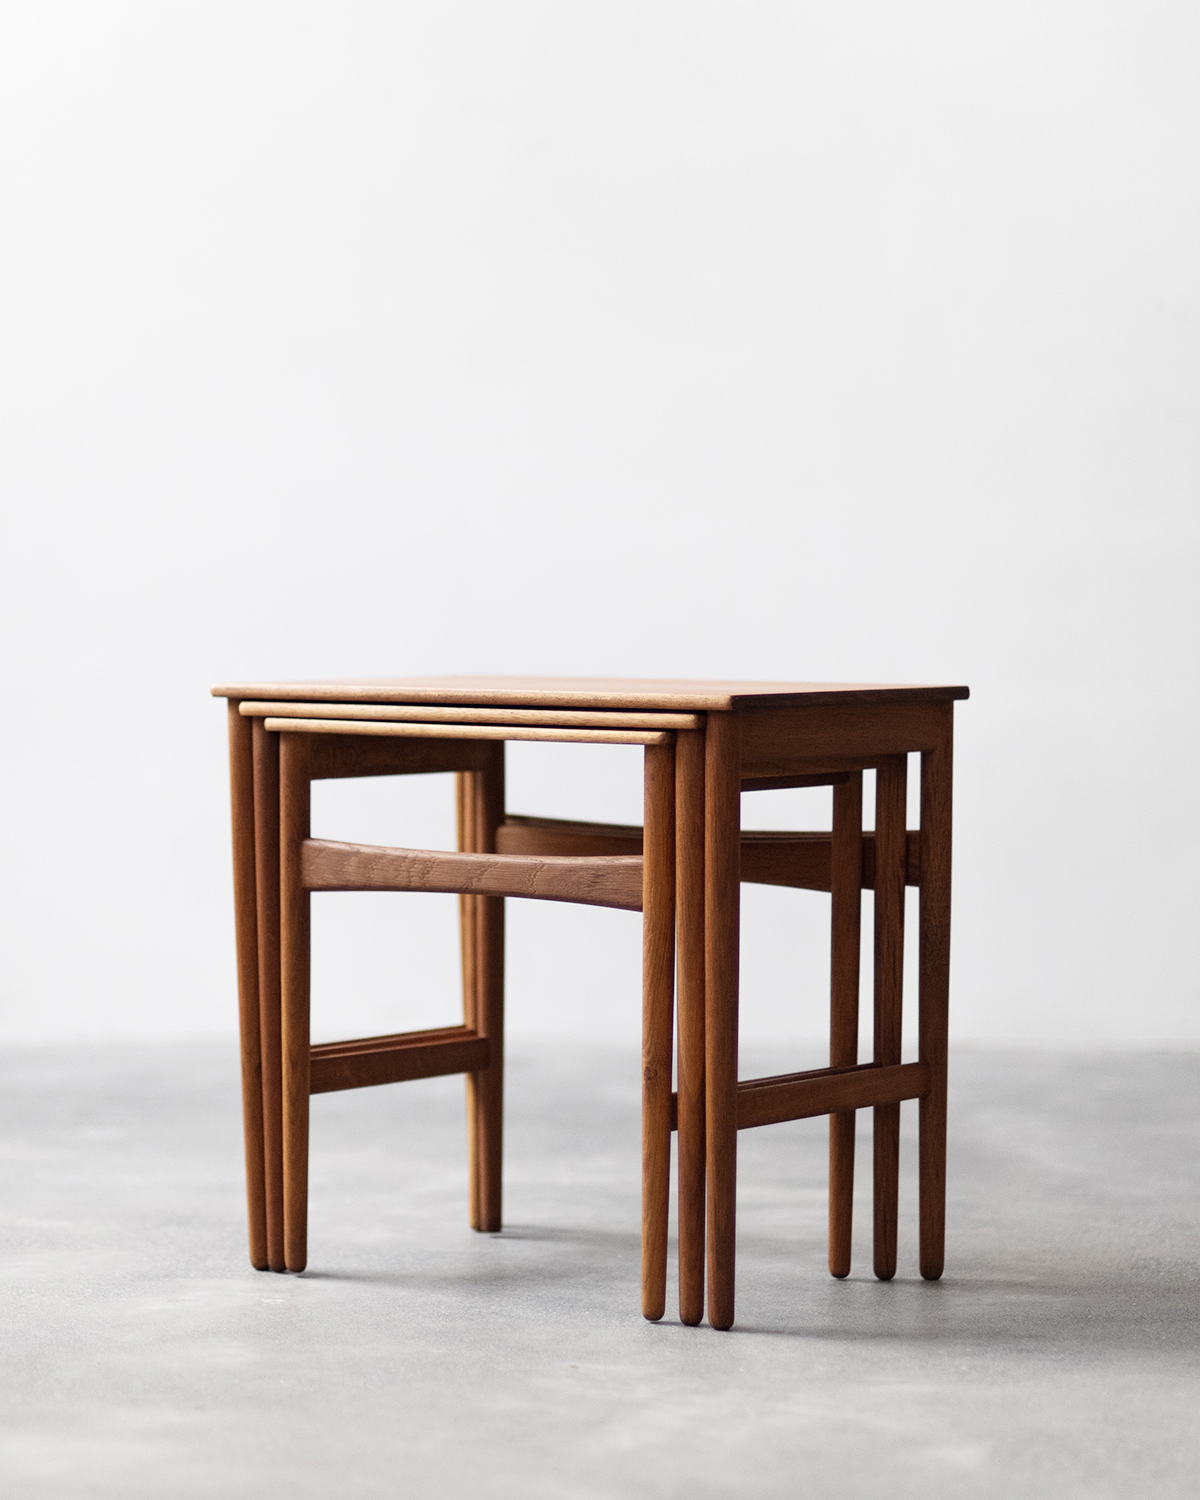 Teak Furniture Restoration Singapore